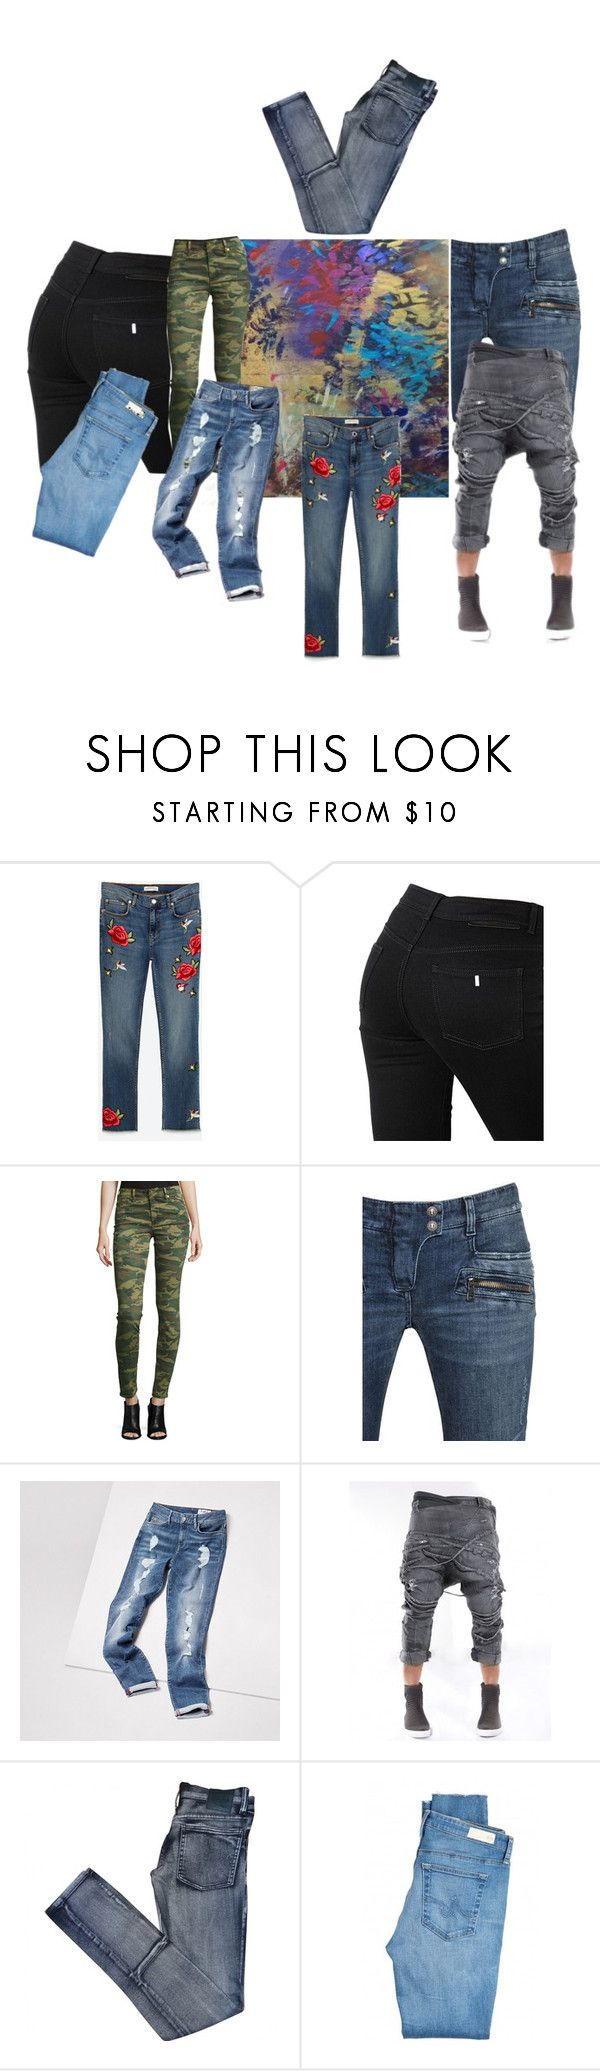 """Jeans it up!"" by ester77zoe ❤ liked on Polyvore featuring STELLA McCARTNEY, True Religion, Balmain, Cheap Monday and AG Adriano Goldschmied"